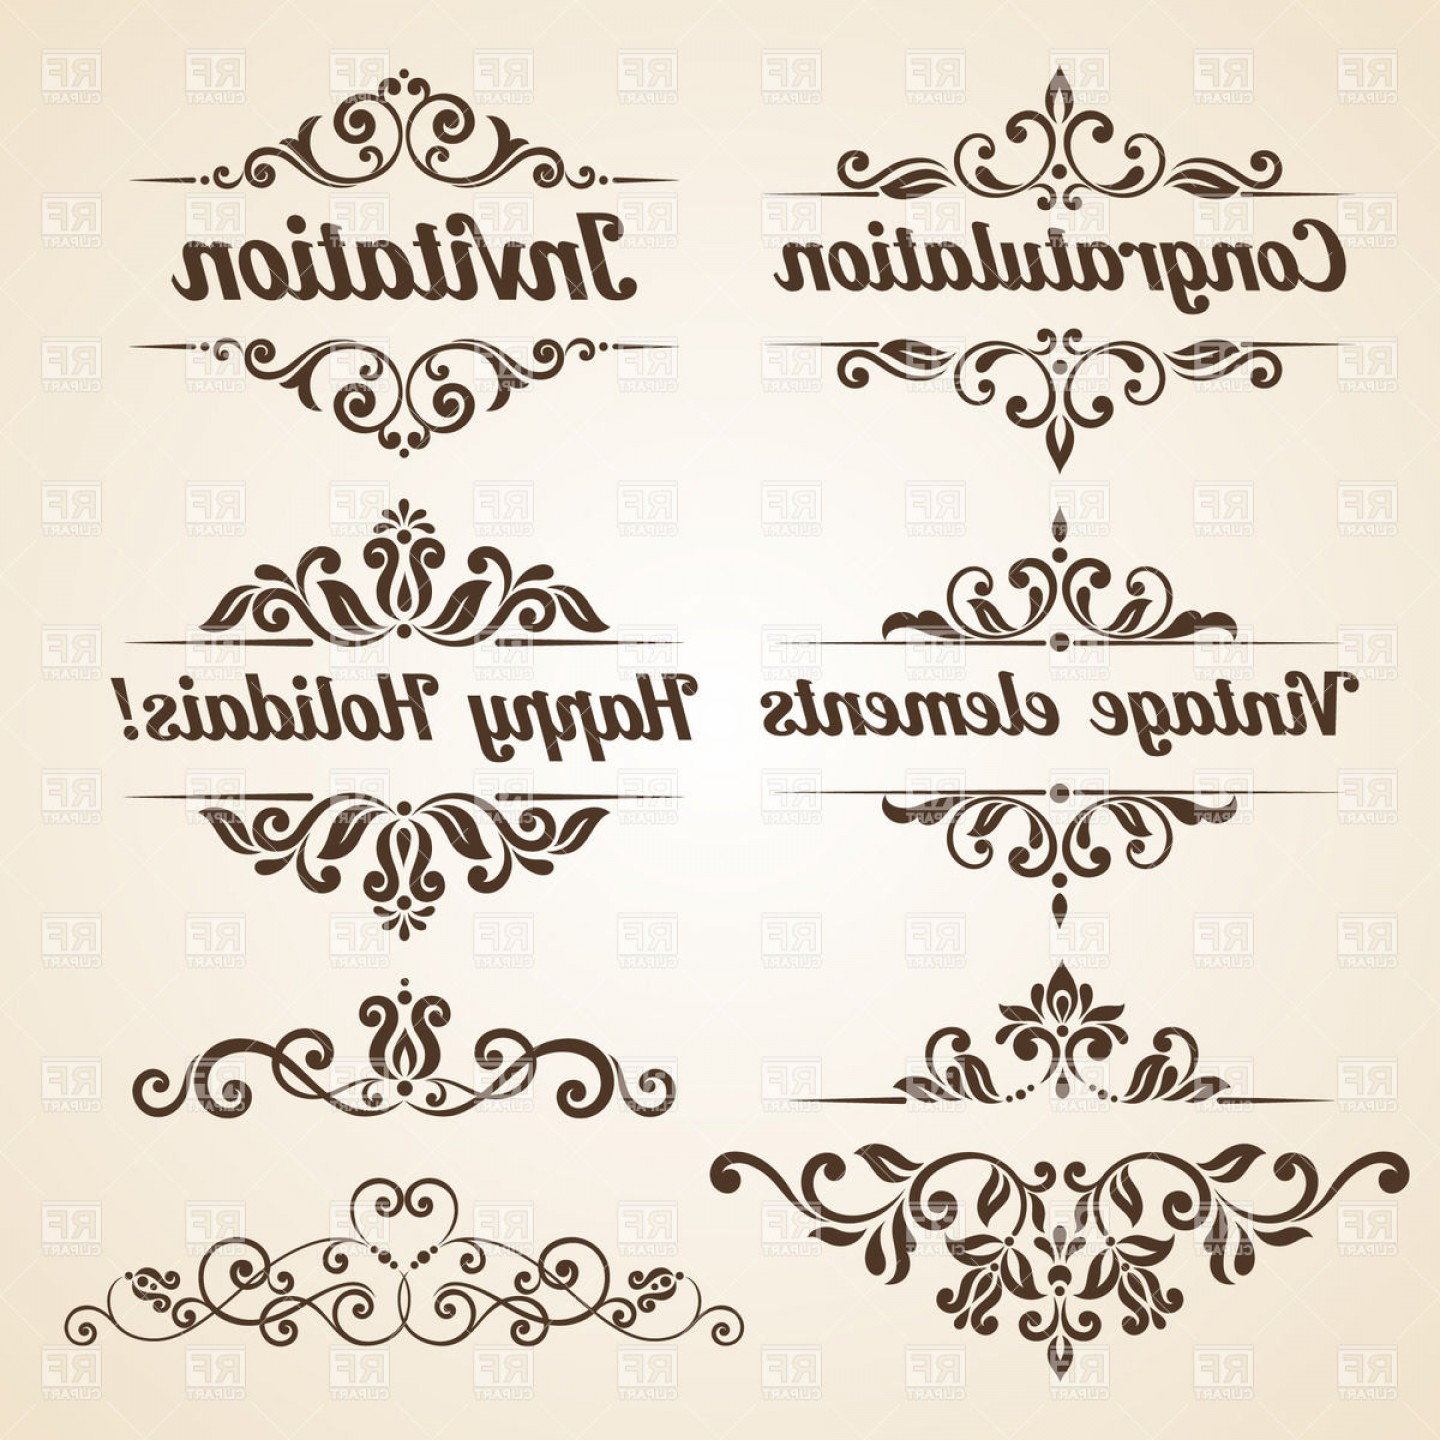 Vector Ornate Vintage Frame Blank: Collection Of Vintage Ornate Frames And Design Elements Vector Clipart